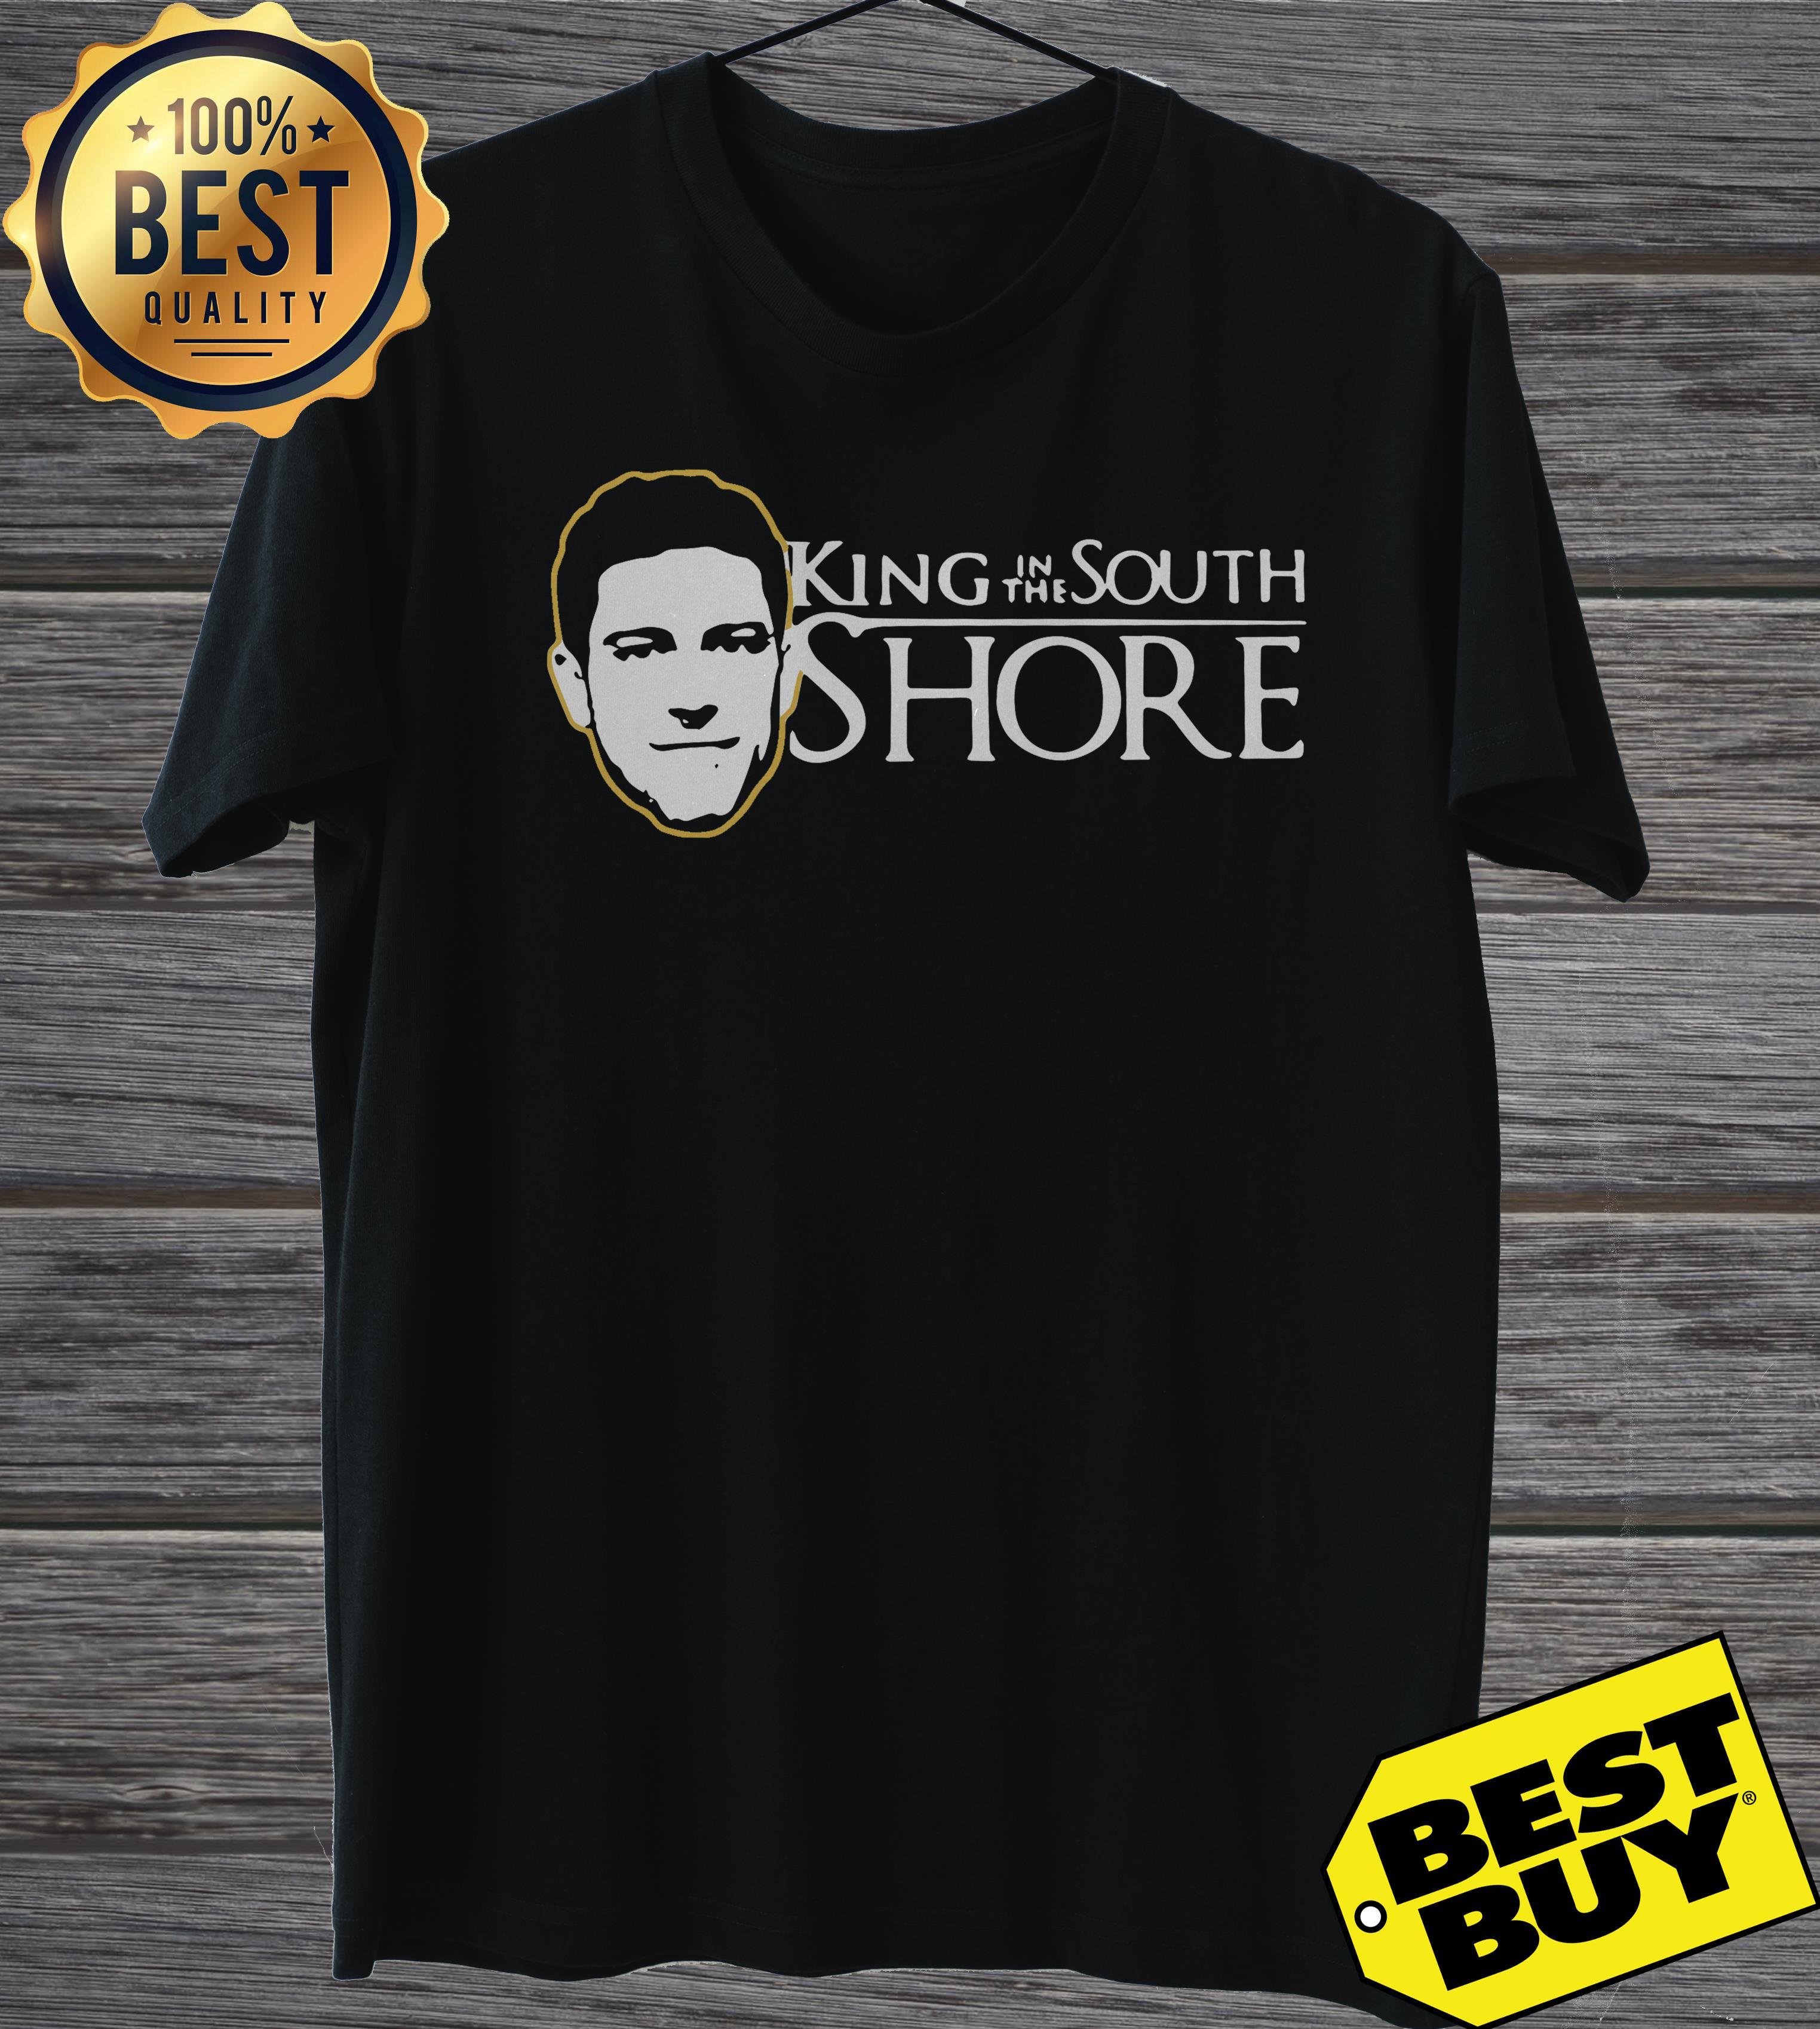 King In The South Shore ladies tee